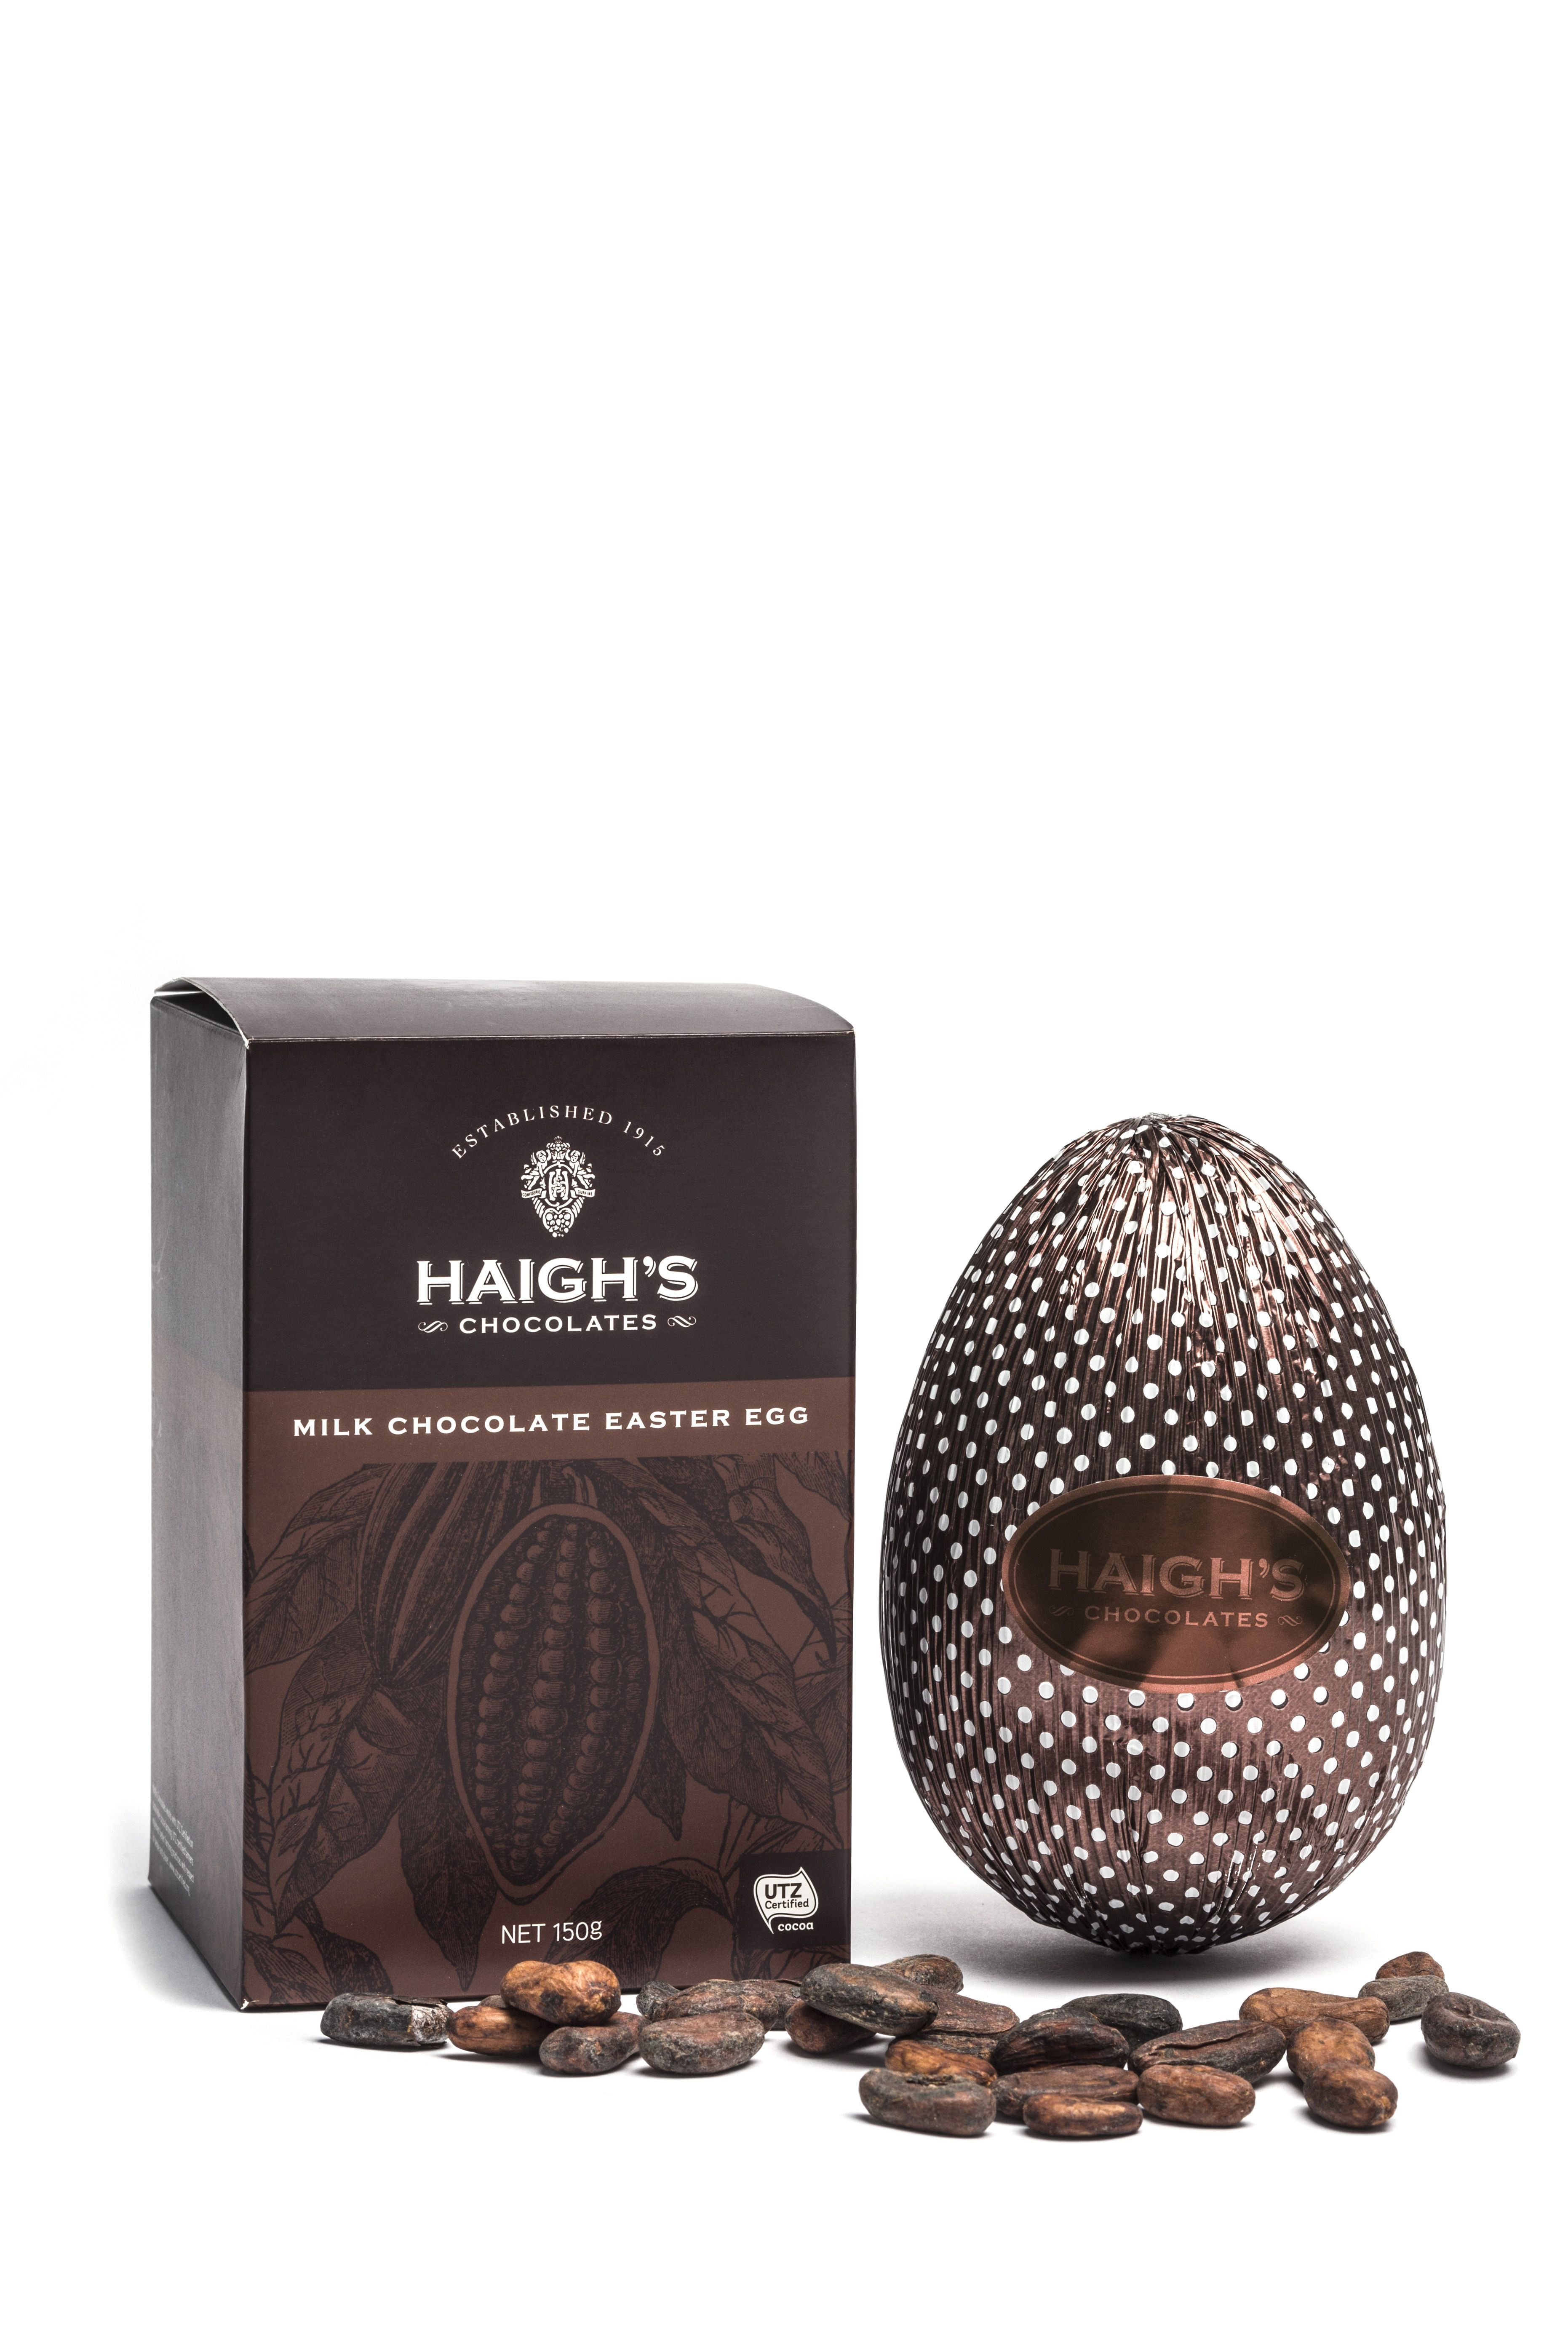 Our utz easter egg is available again this year purchase online our utz easter egg is available again this year purchase online instore and mobile easter gifteaster eggseaster 2015melbournechocolates negle Choice Image